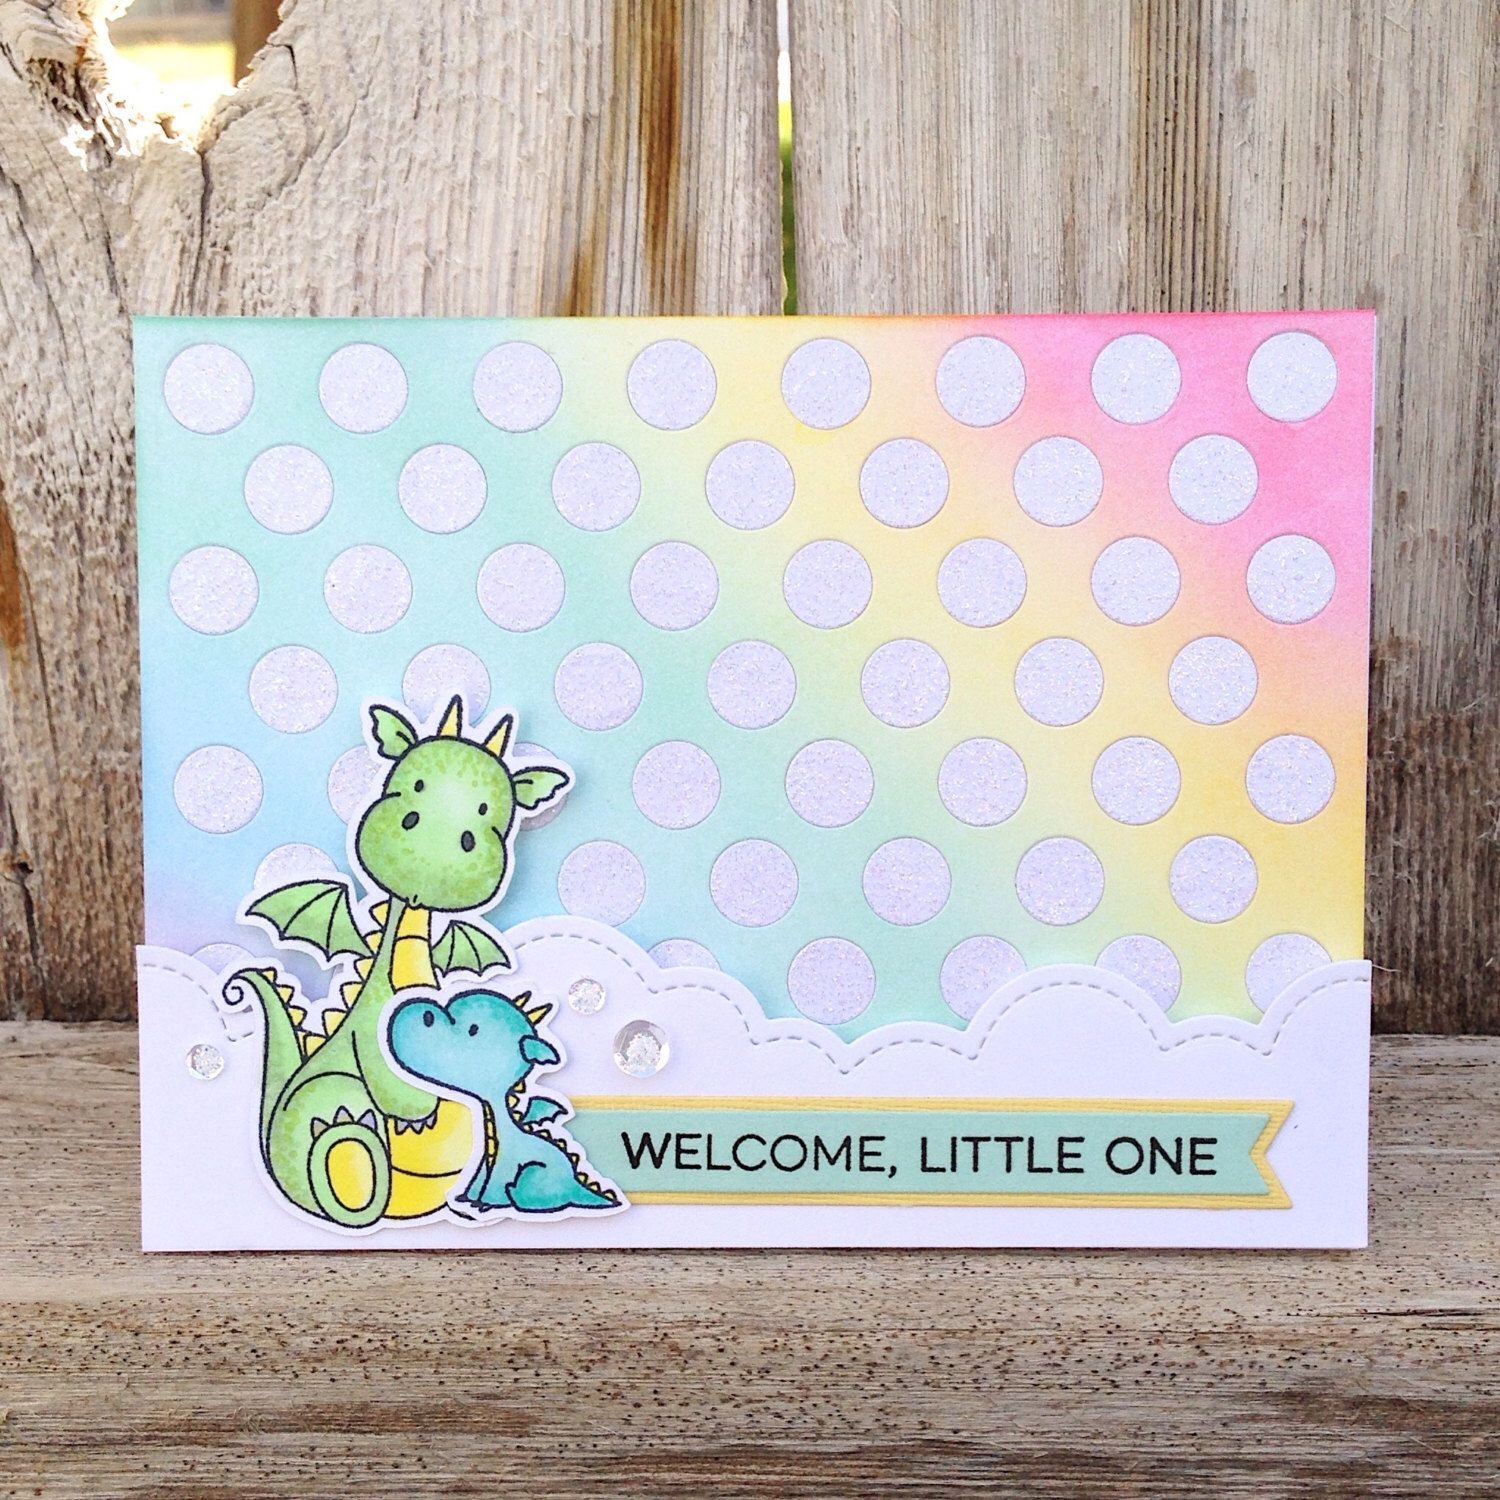 Little One / New Baby Handmade Greeting Card / New